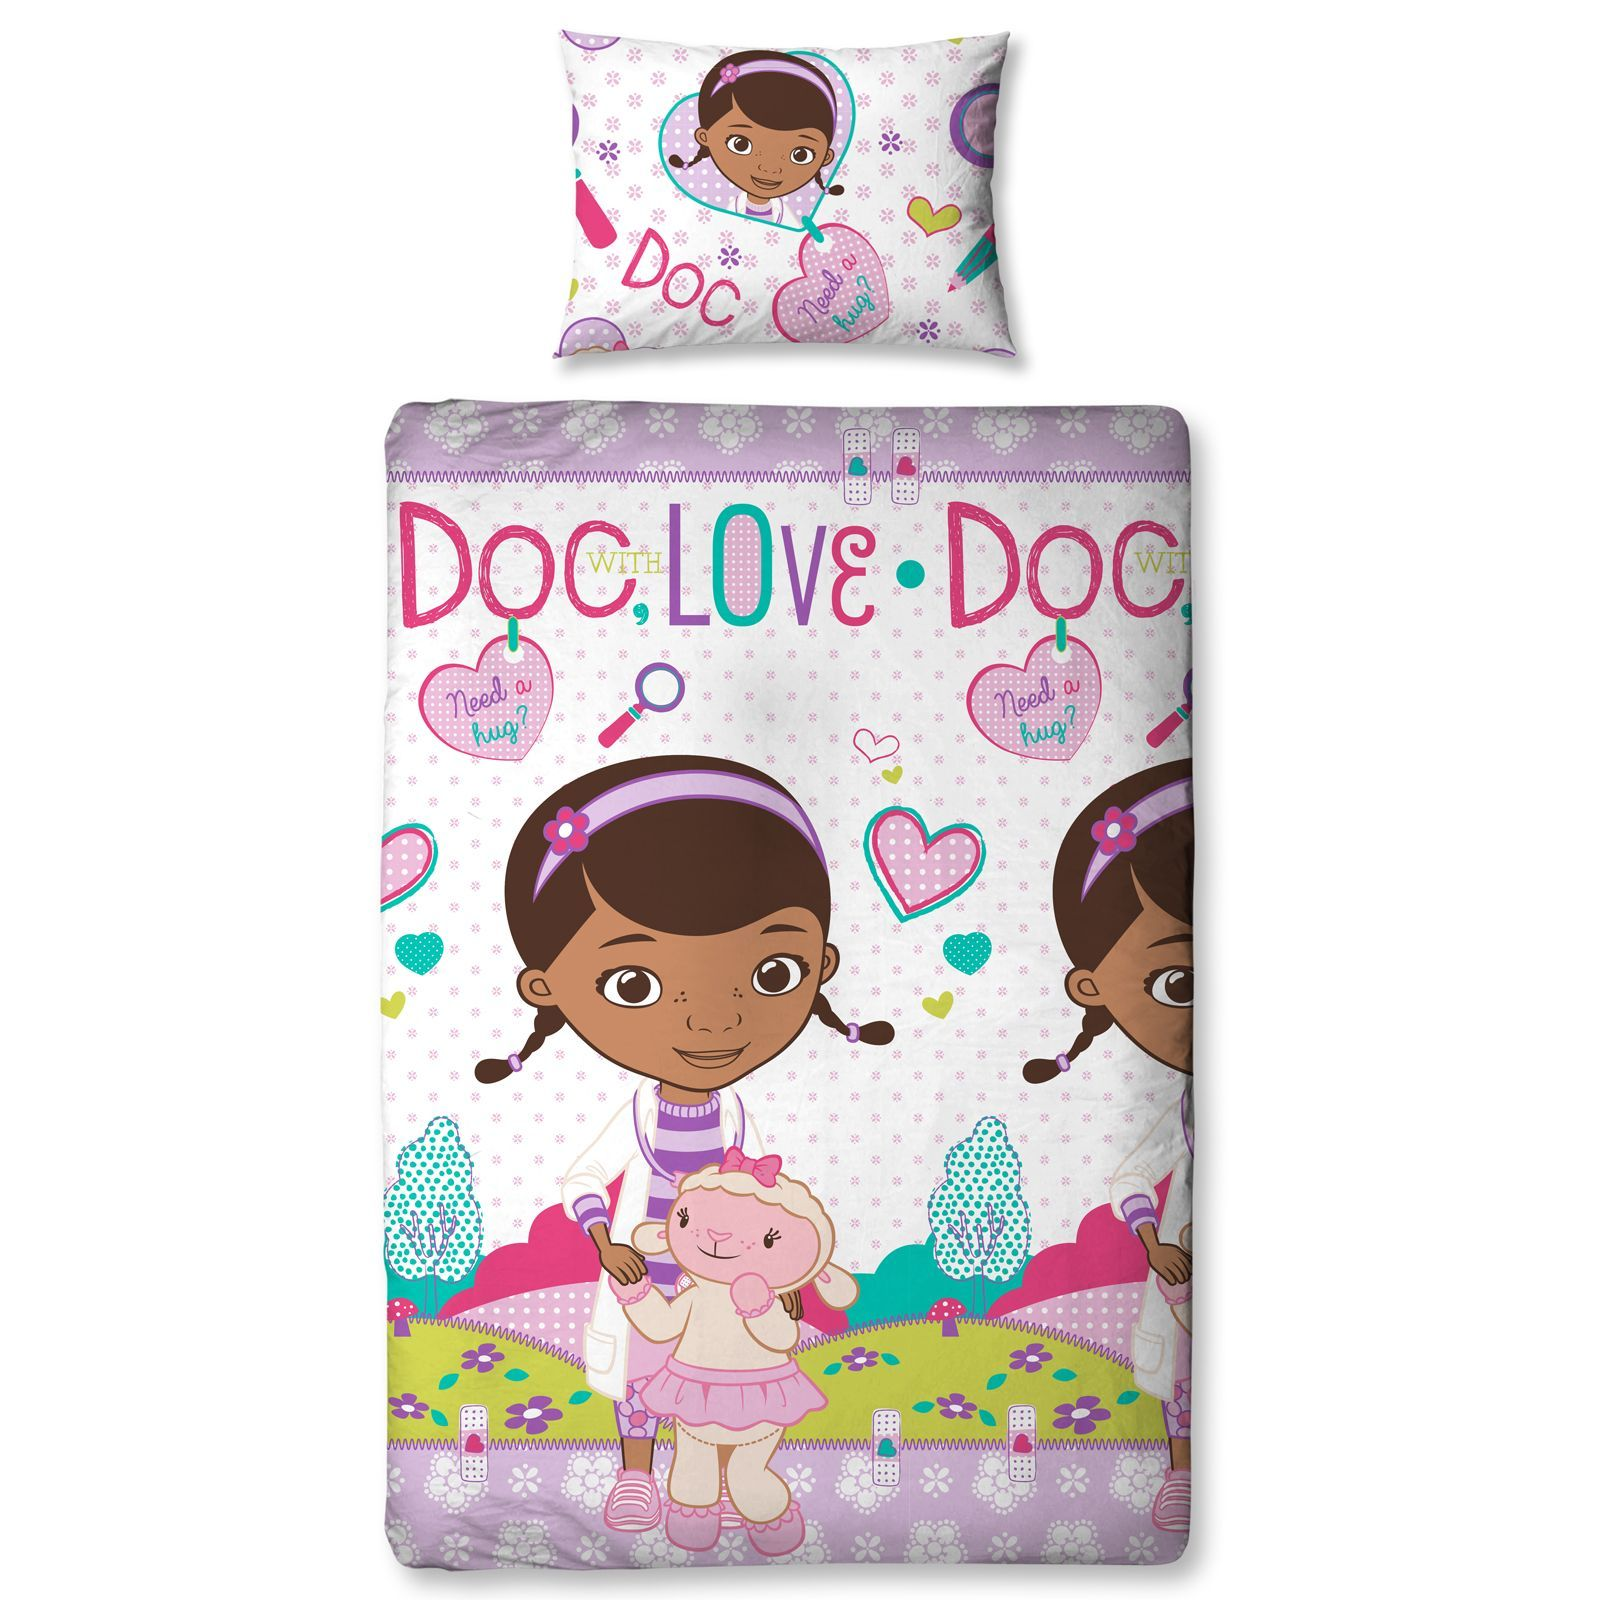 doc mcstuffins upholstered chair uk rug under office bedding single and double duvet cover sets